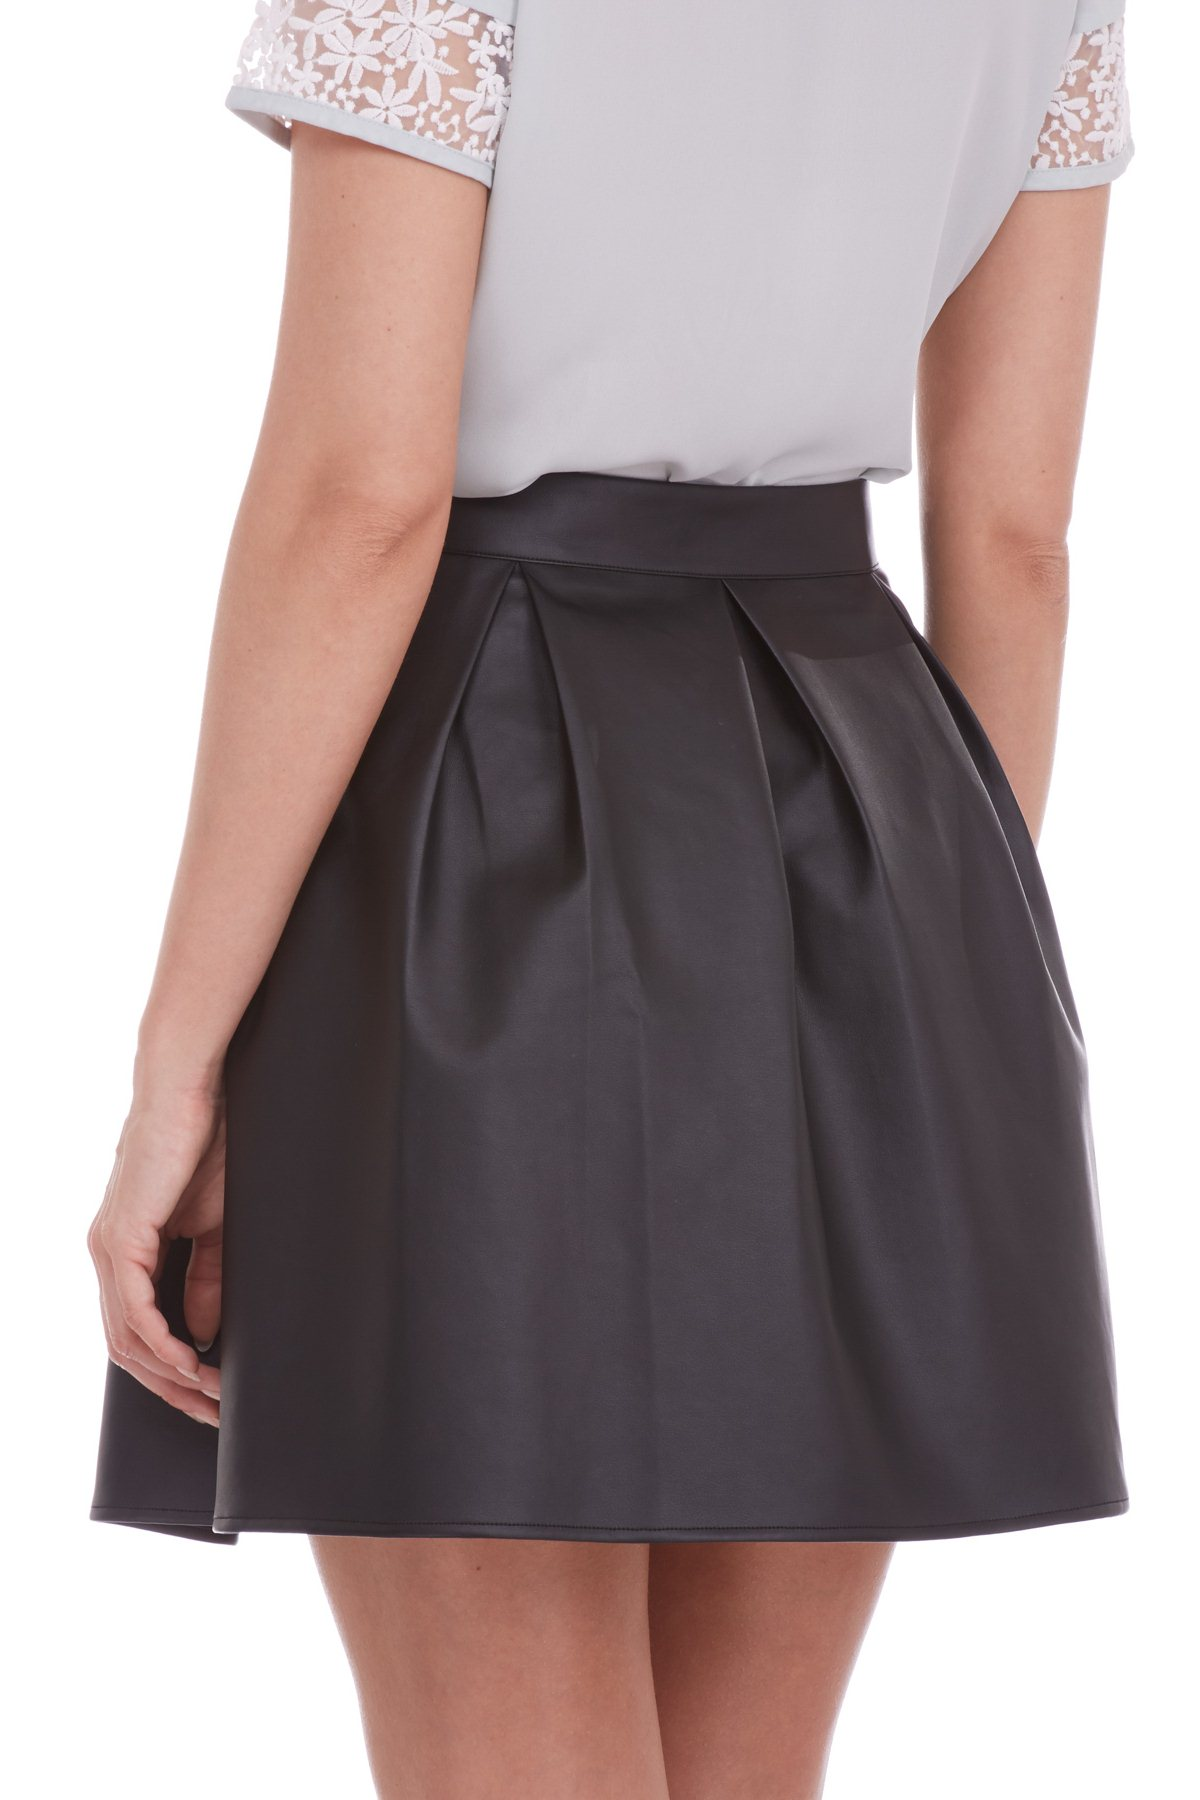 AT14 Poppy Skirt - Black - Sugarhill Boutique